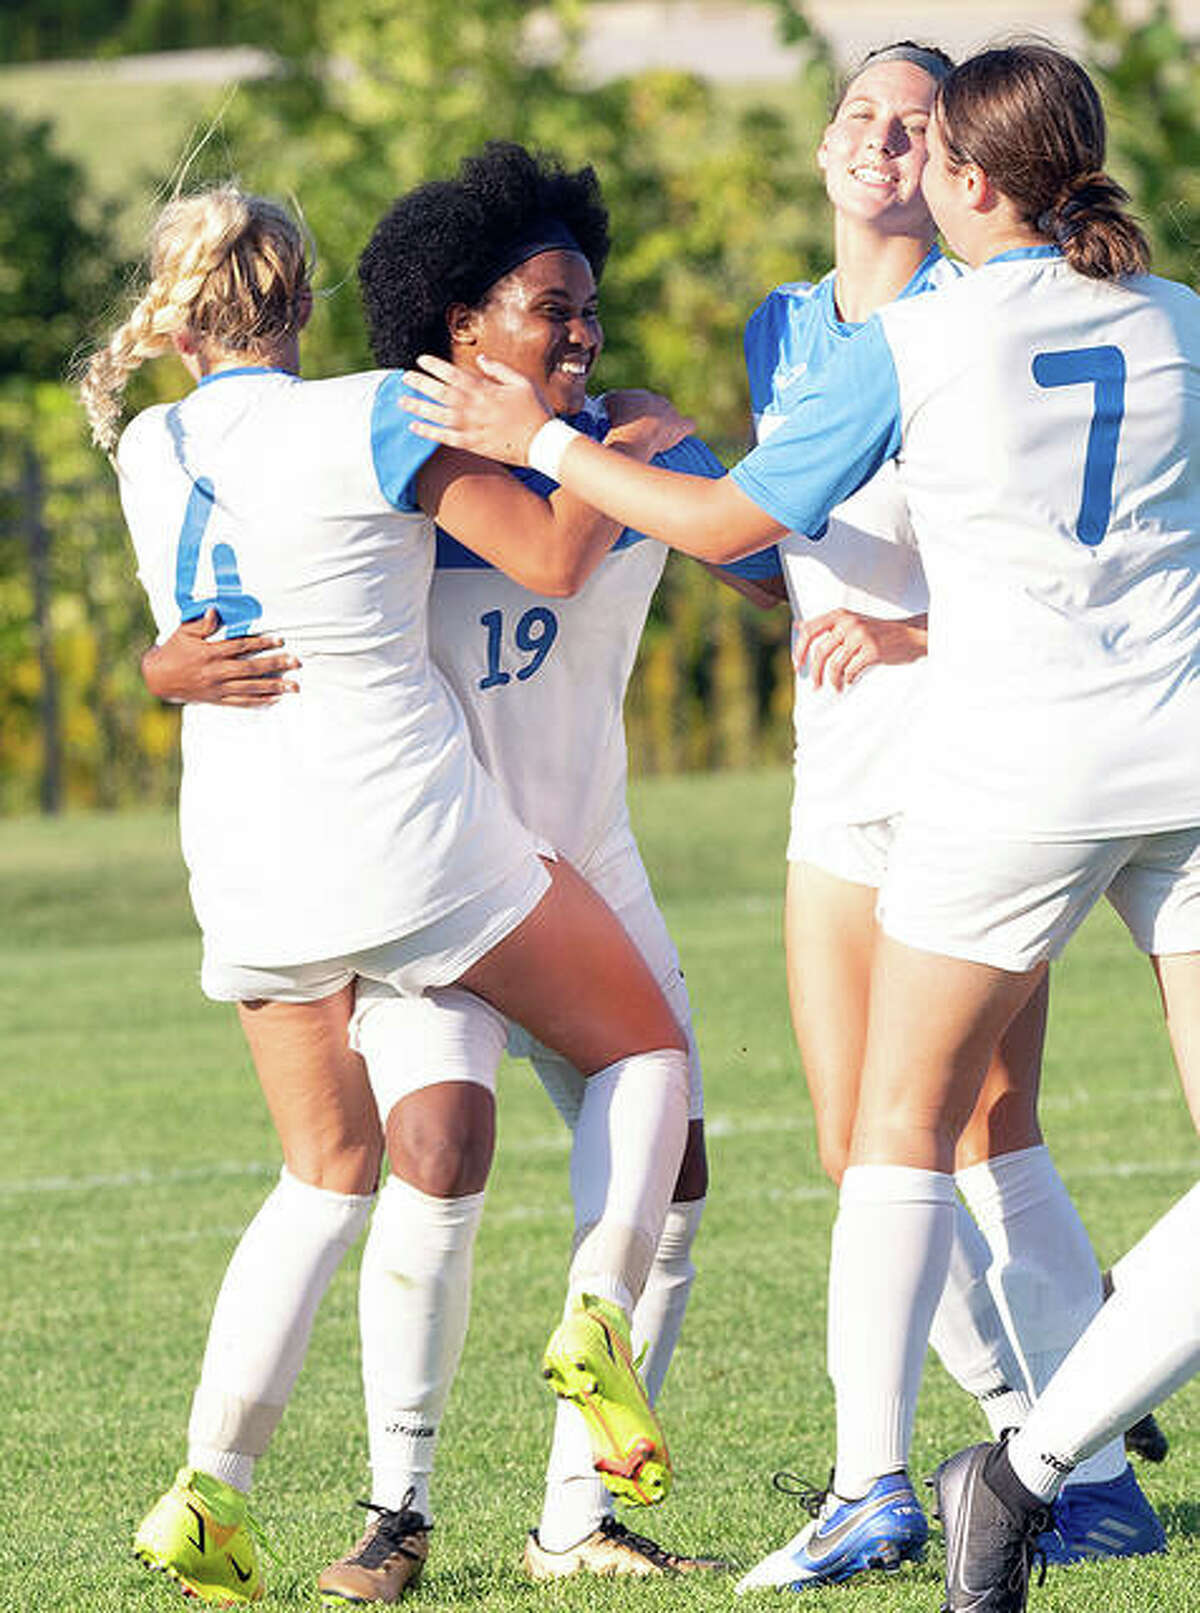 LCCC's Chrissy Mitchell (19) is congratulated by teammates Skylar Hollingshead (4), Lauren Kirkby (7) and Kaya Thies after scoring the game-winning goal against Illinois Central College Tuesday at LCCC.